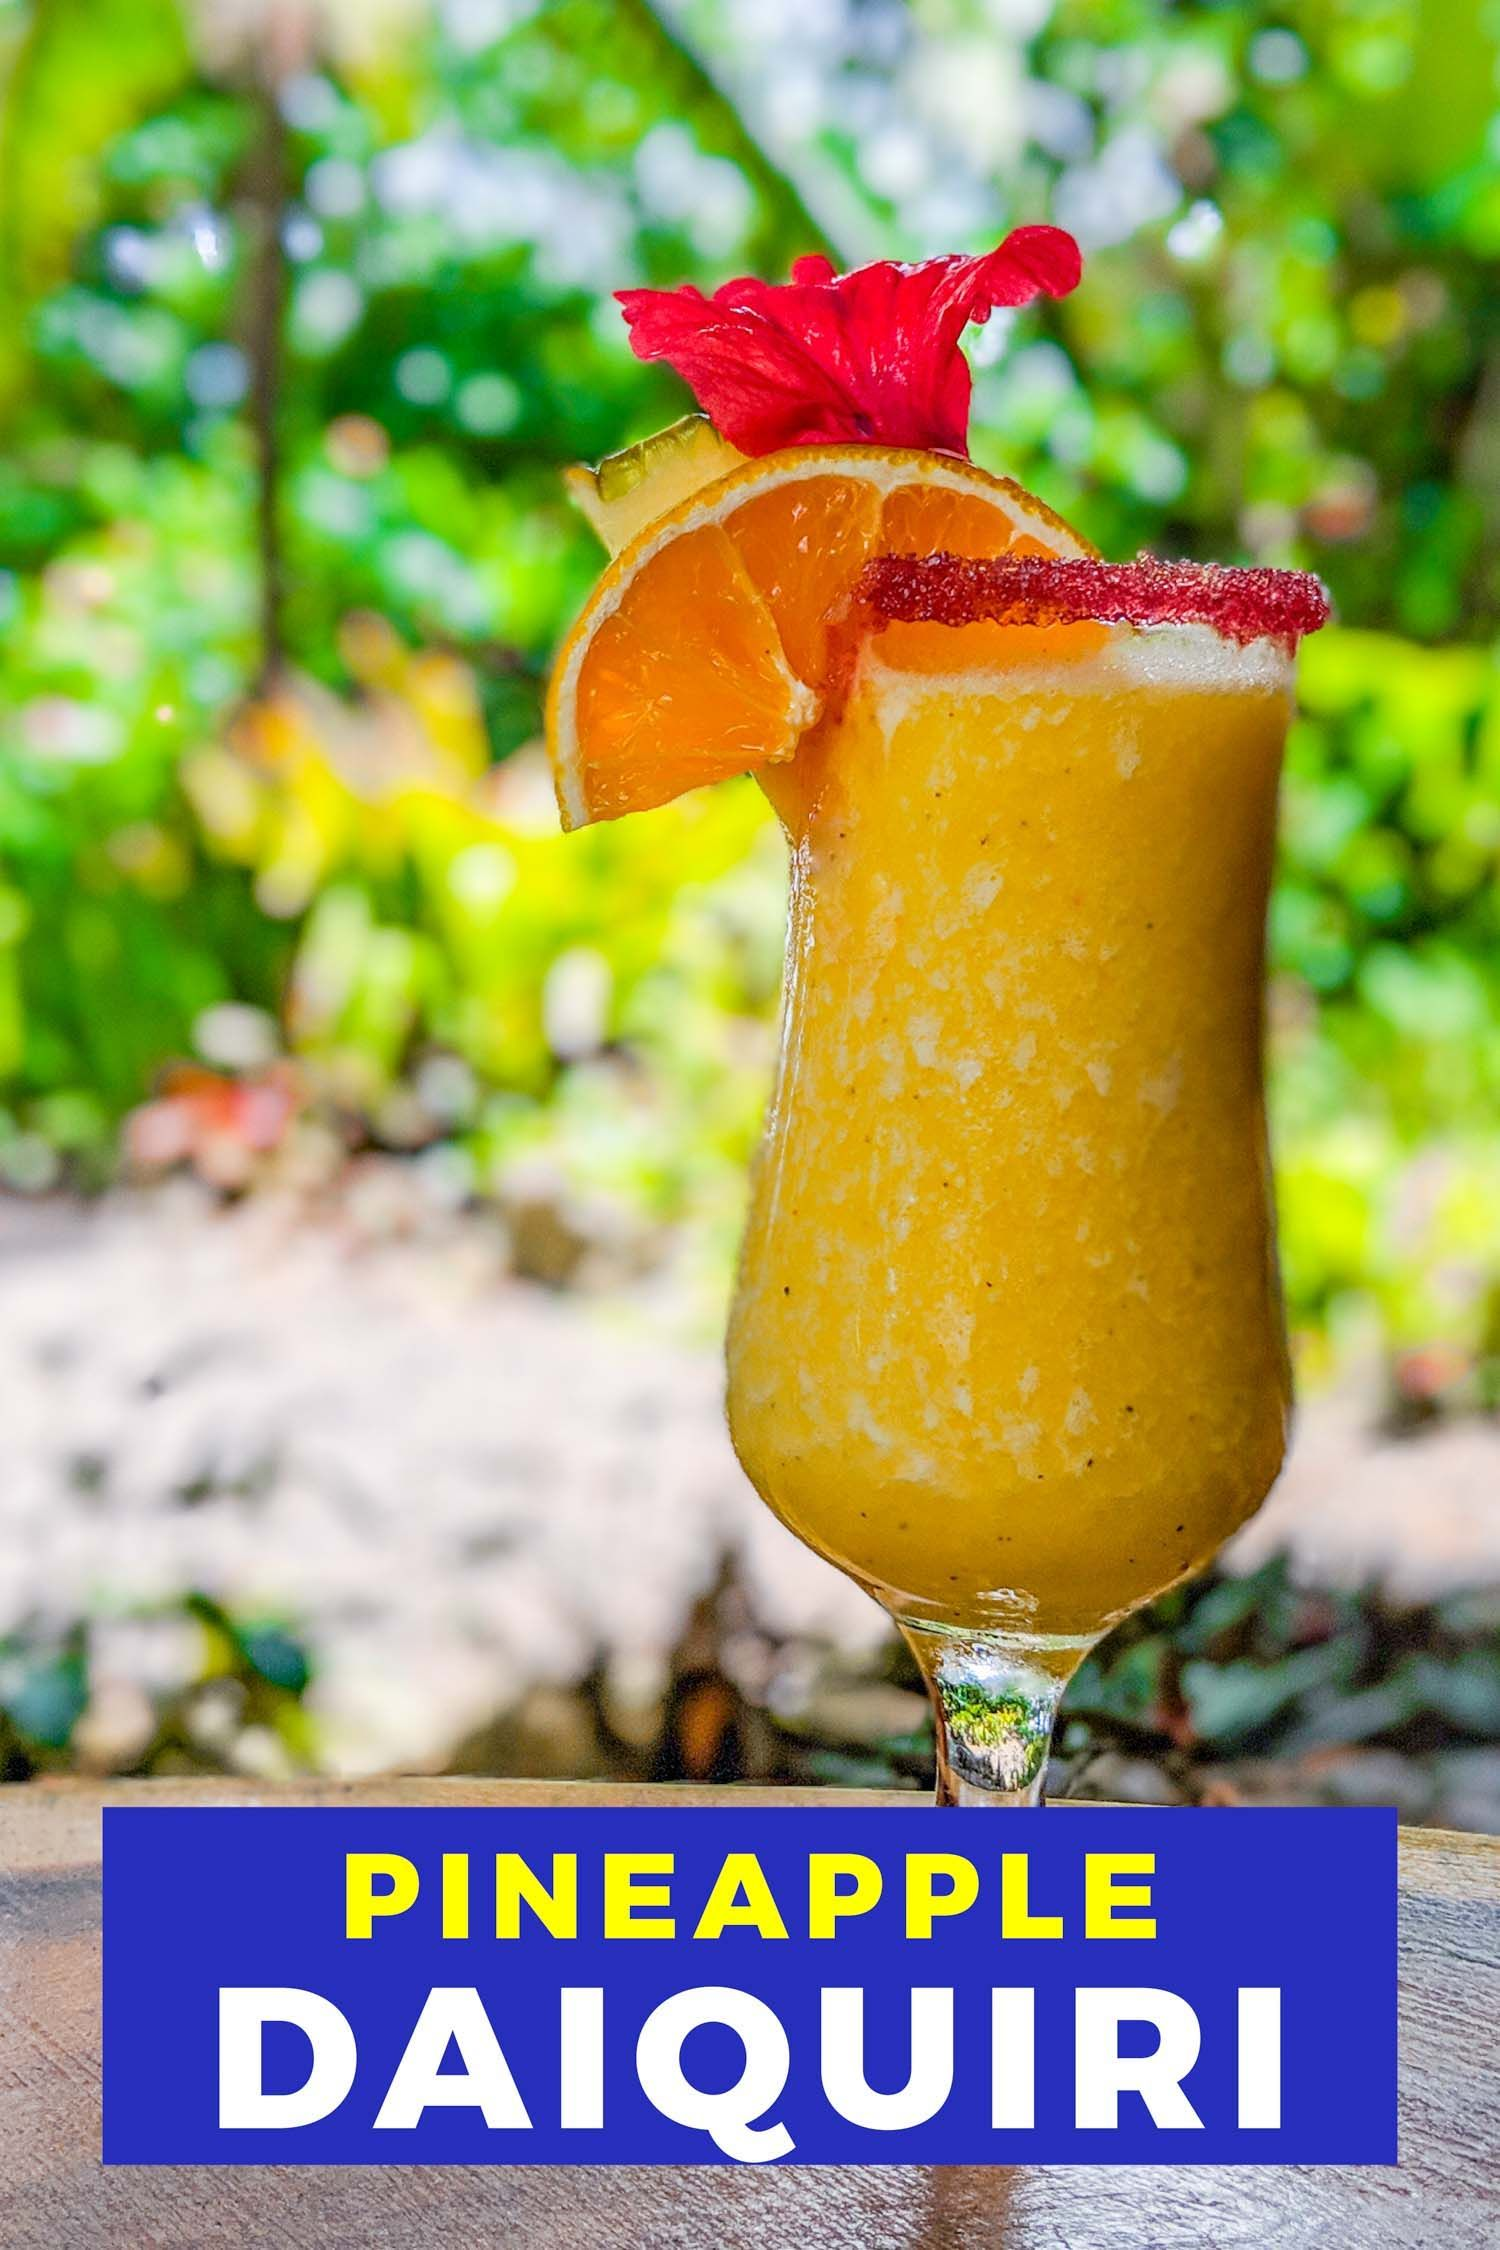 Bring The Tropics To You With This Frozen Pineapple Daiquiri In 2020 Frozen Pineapple Pineapple Smoothie Daiquiri